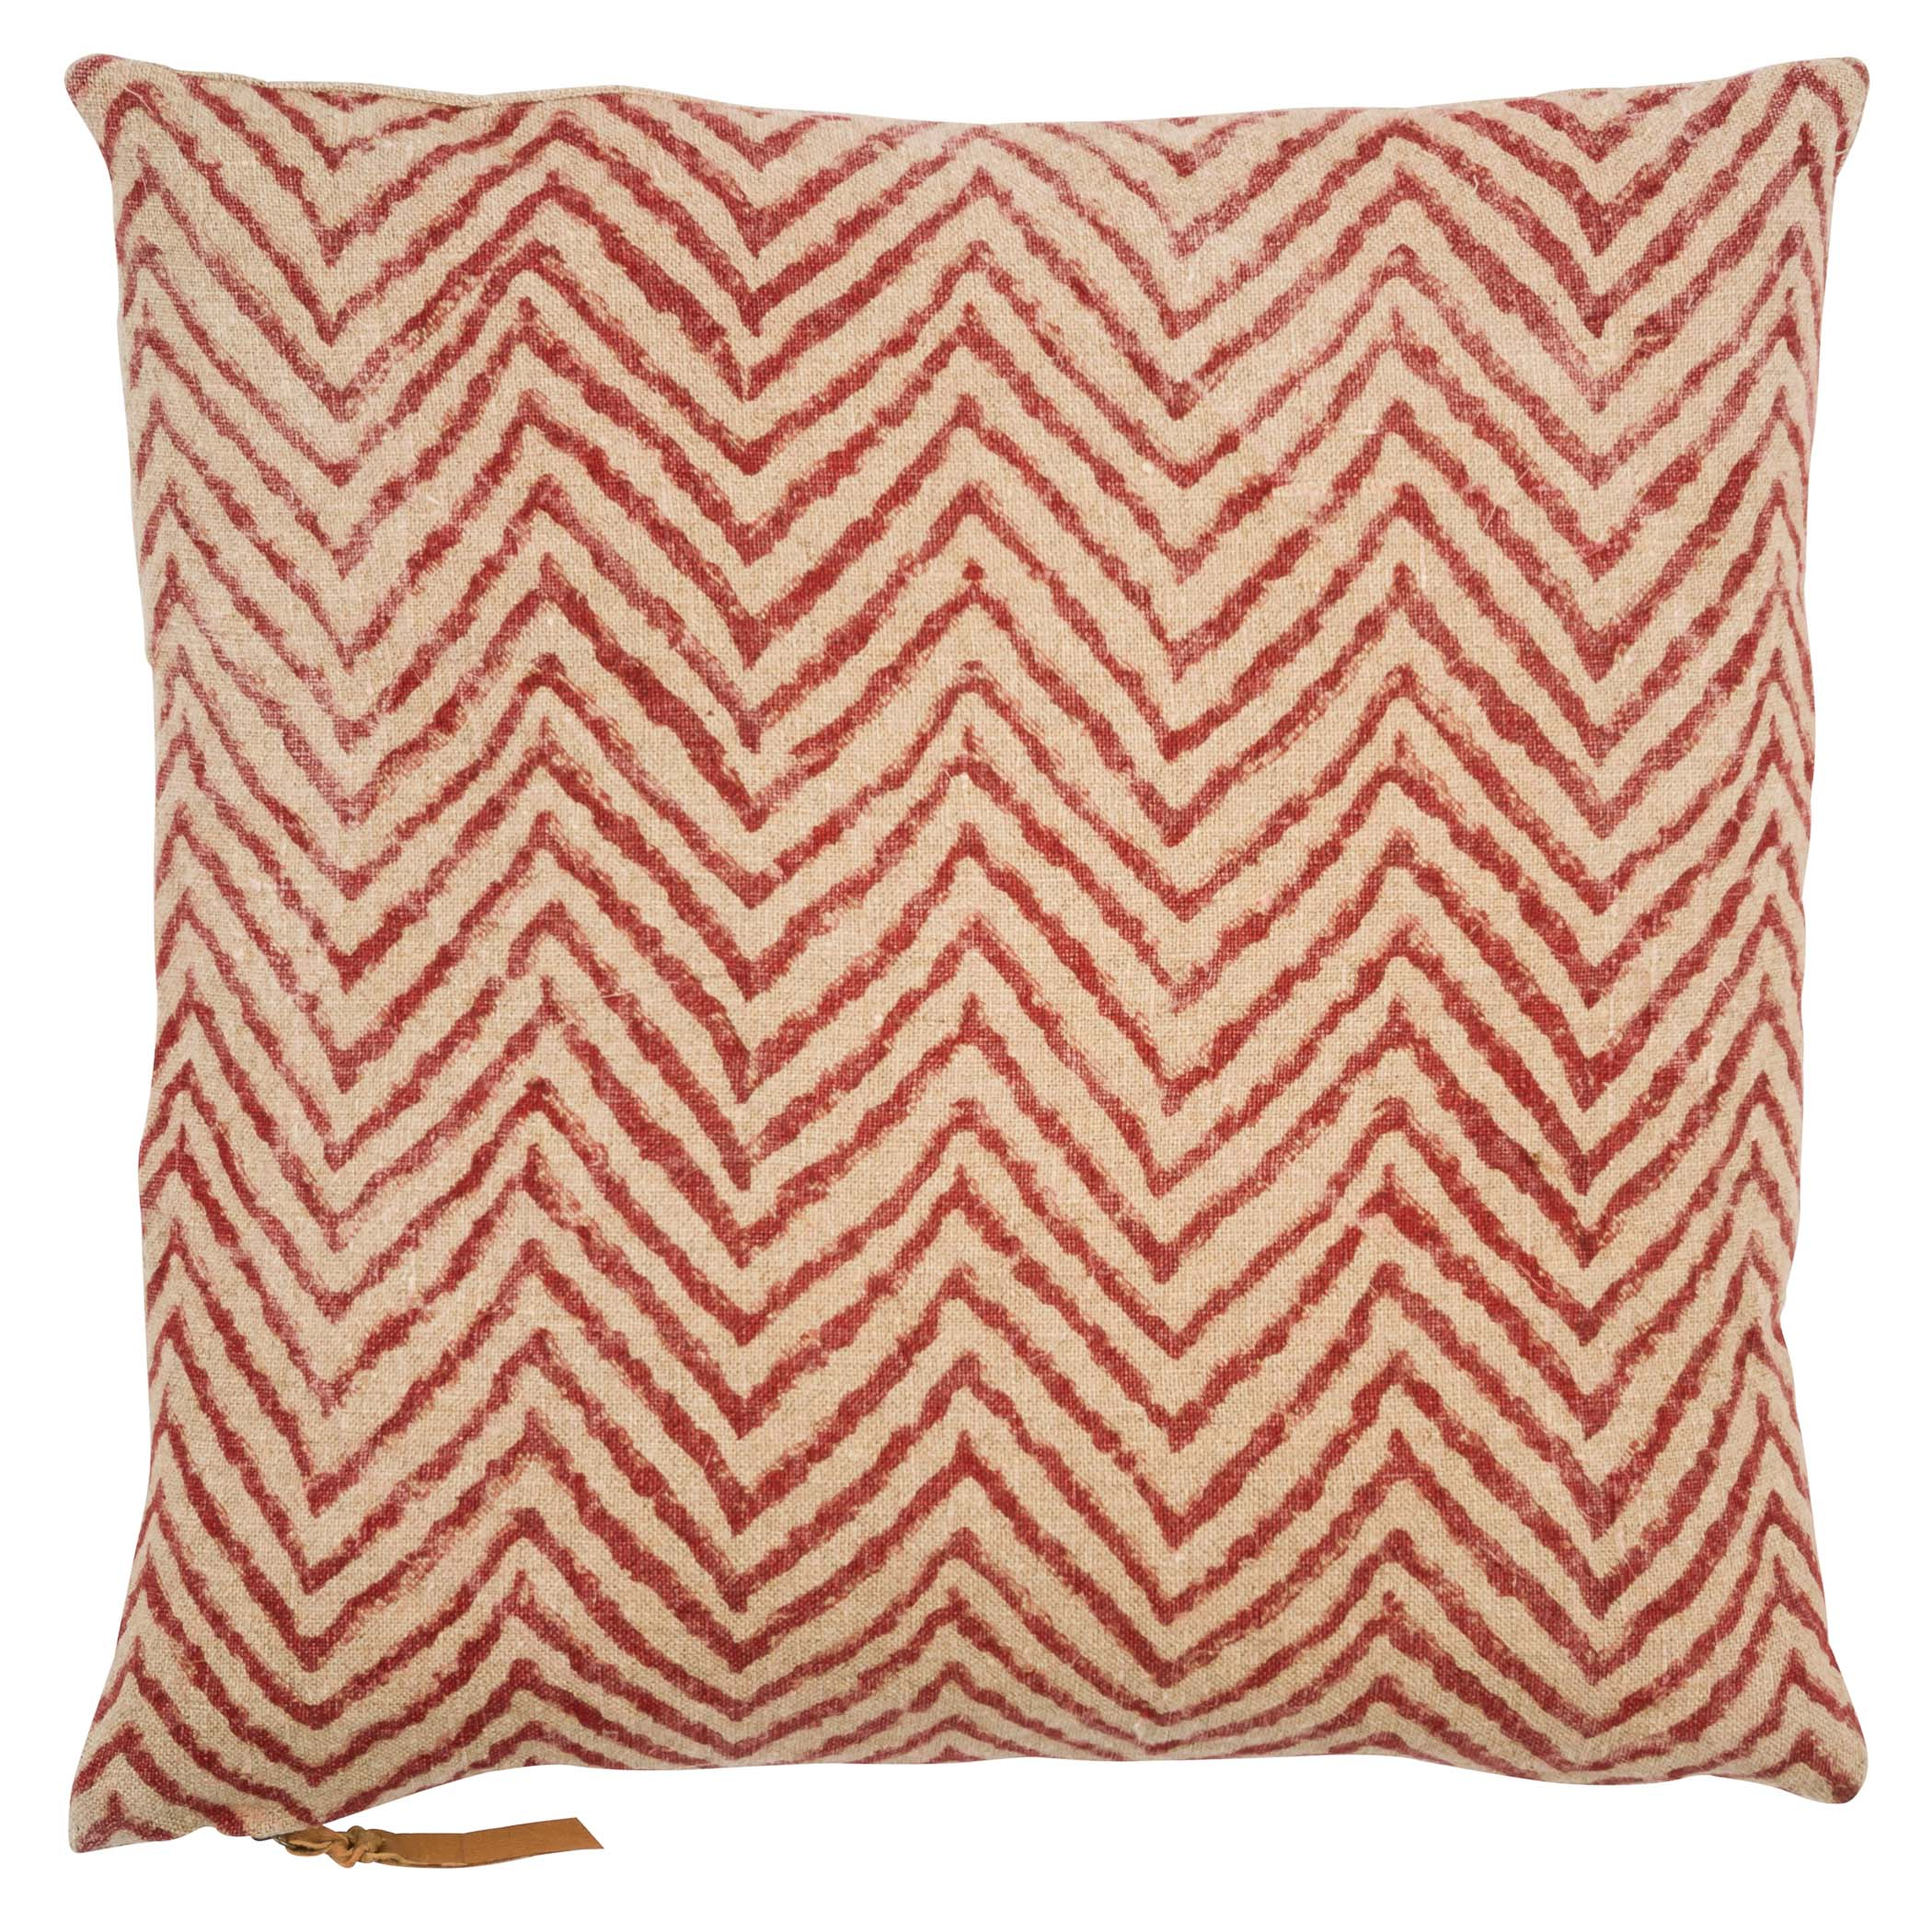 Cushion Cover - Chevron - Spicy Red